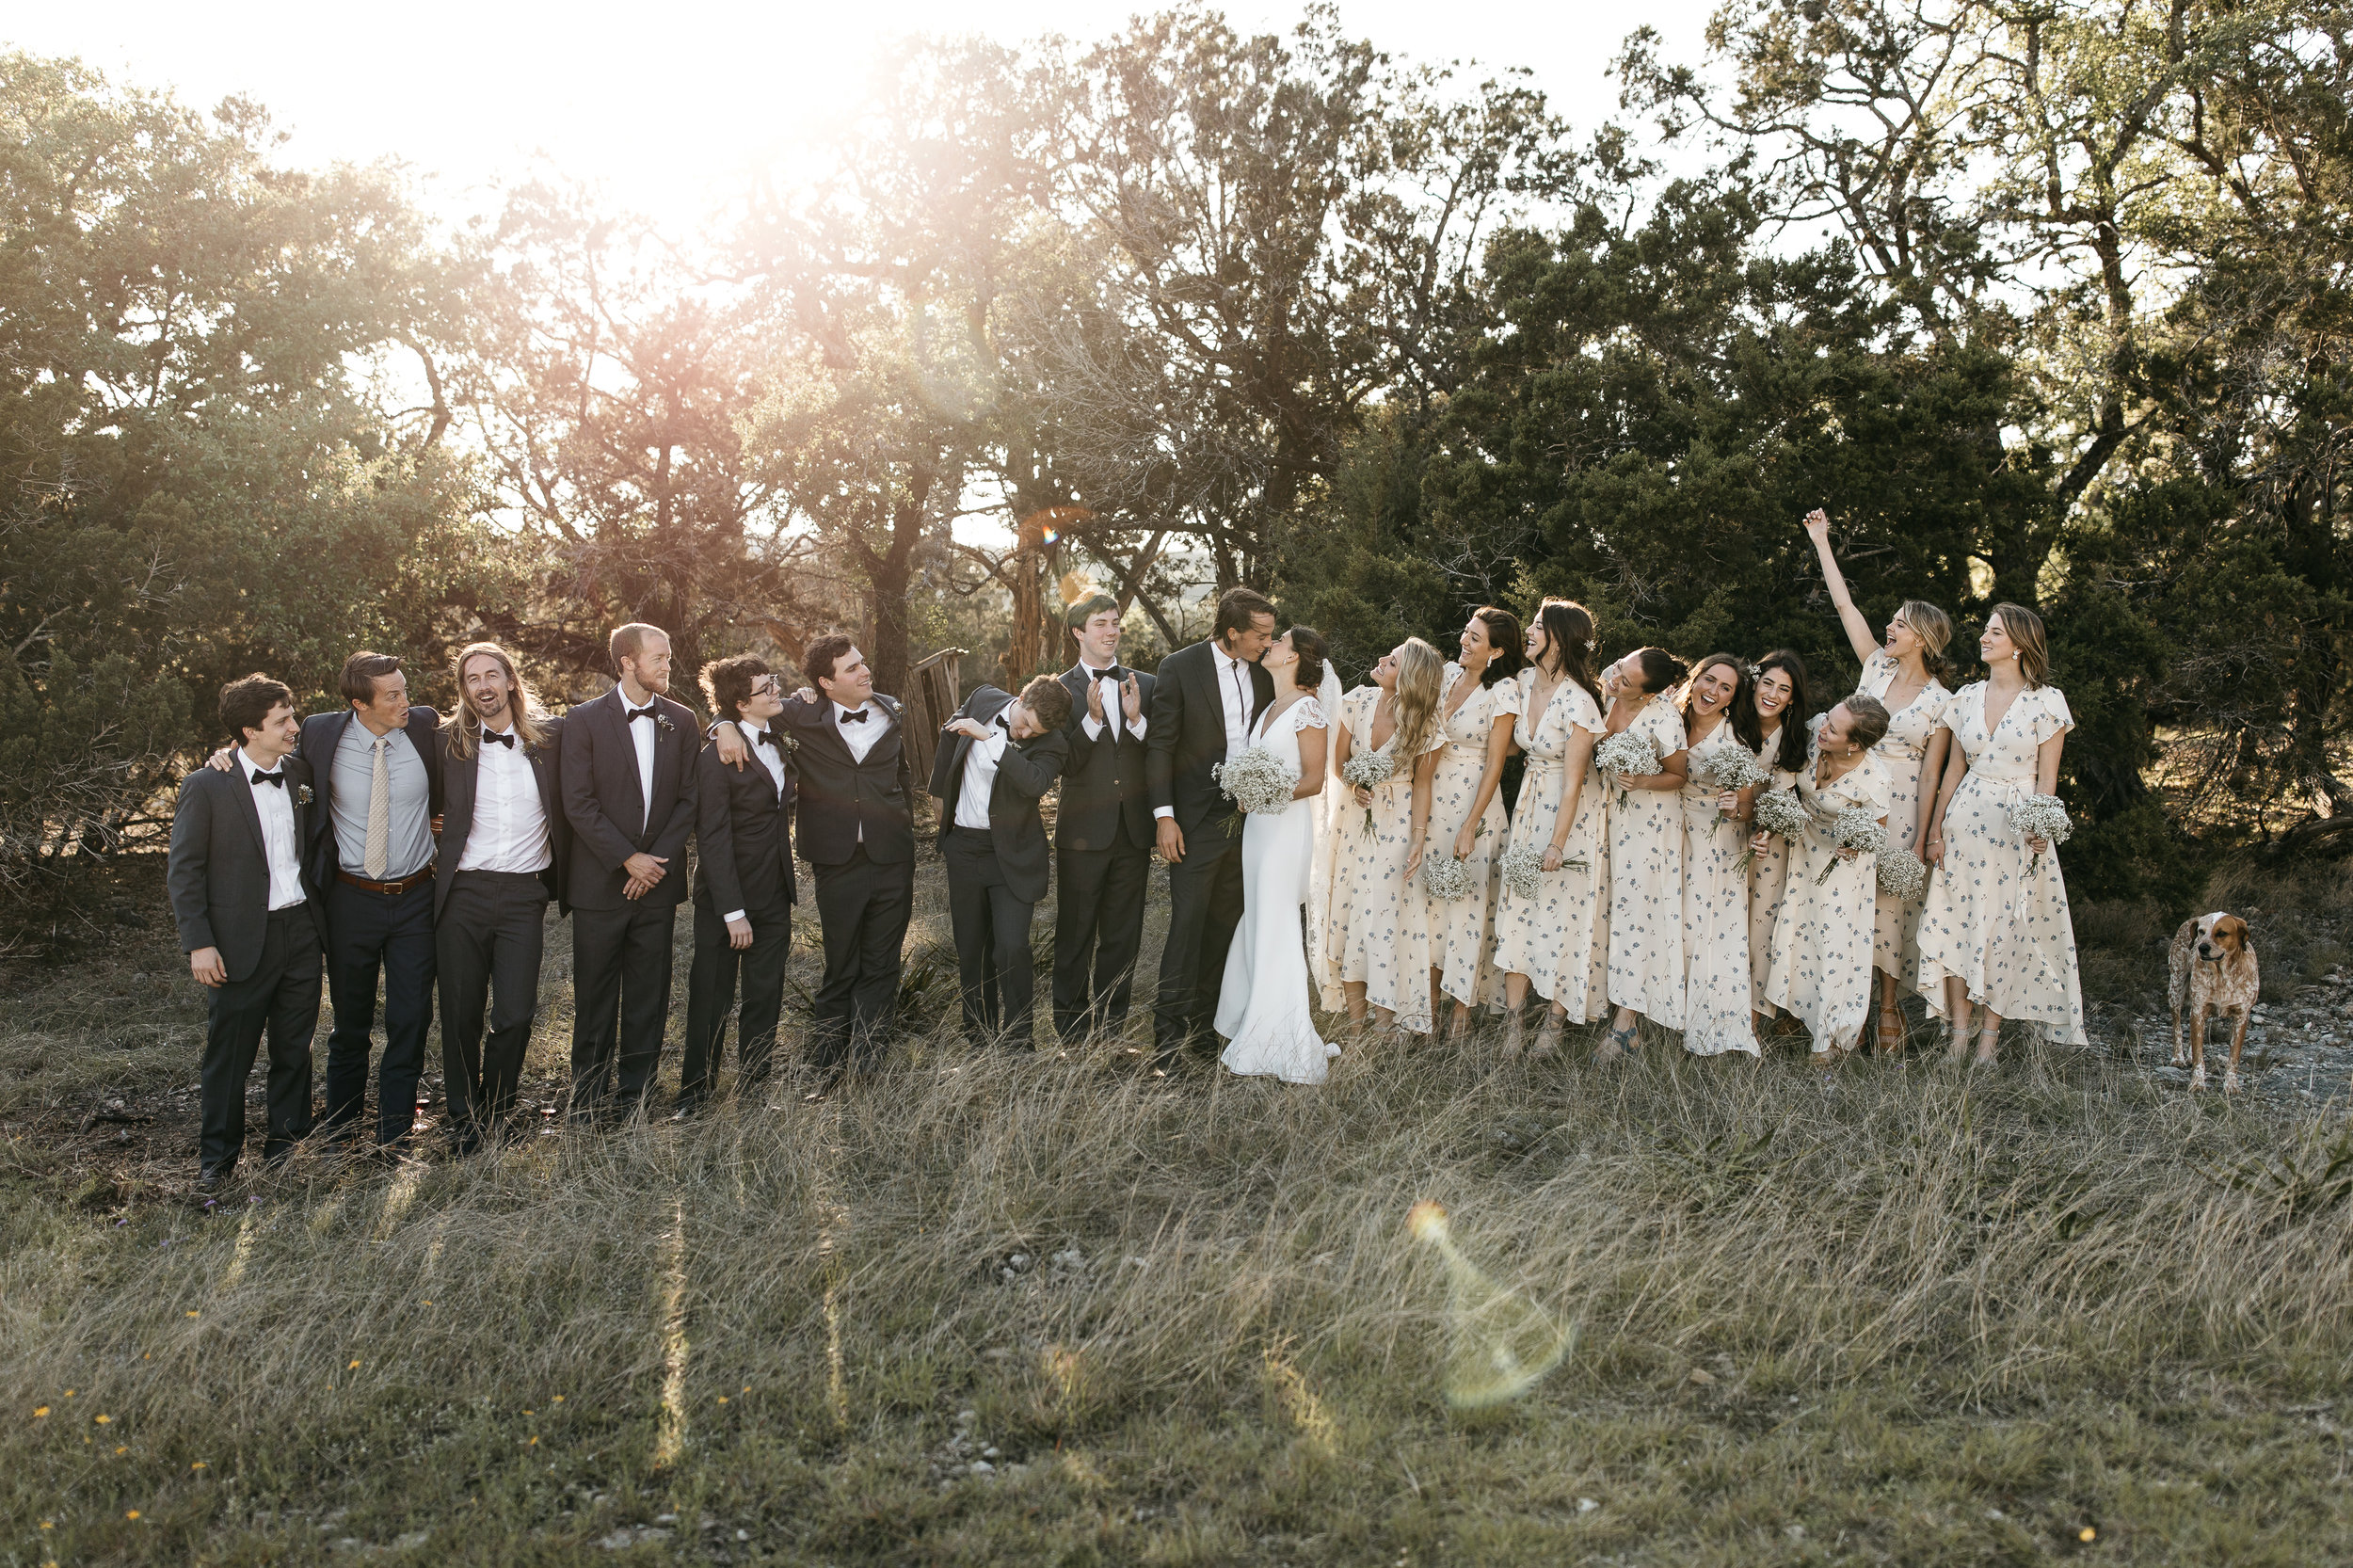 Kate_Luke_Texas_Wedding_JeanLaurentGaudy_508.jpg